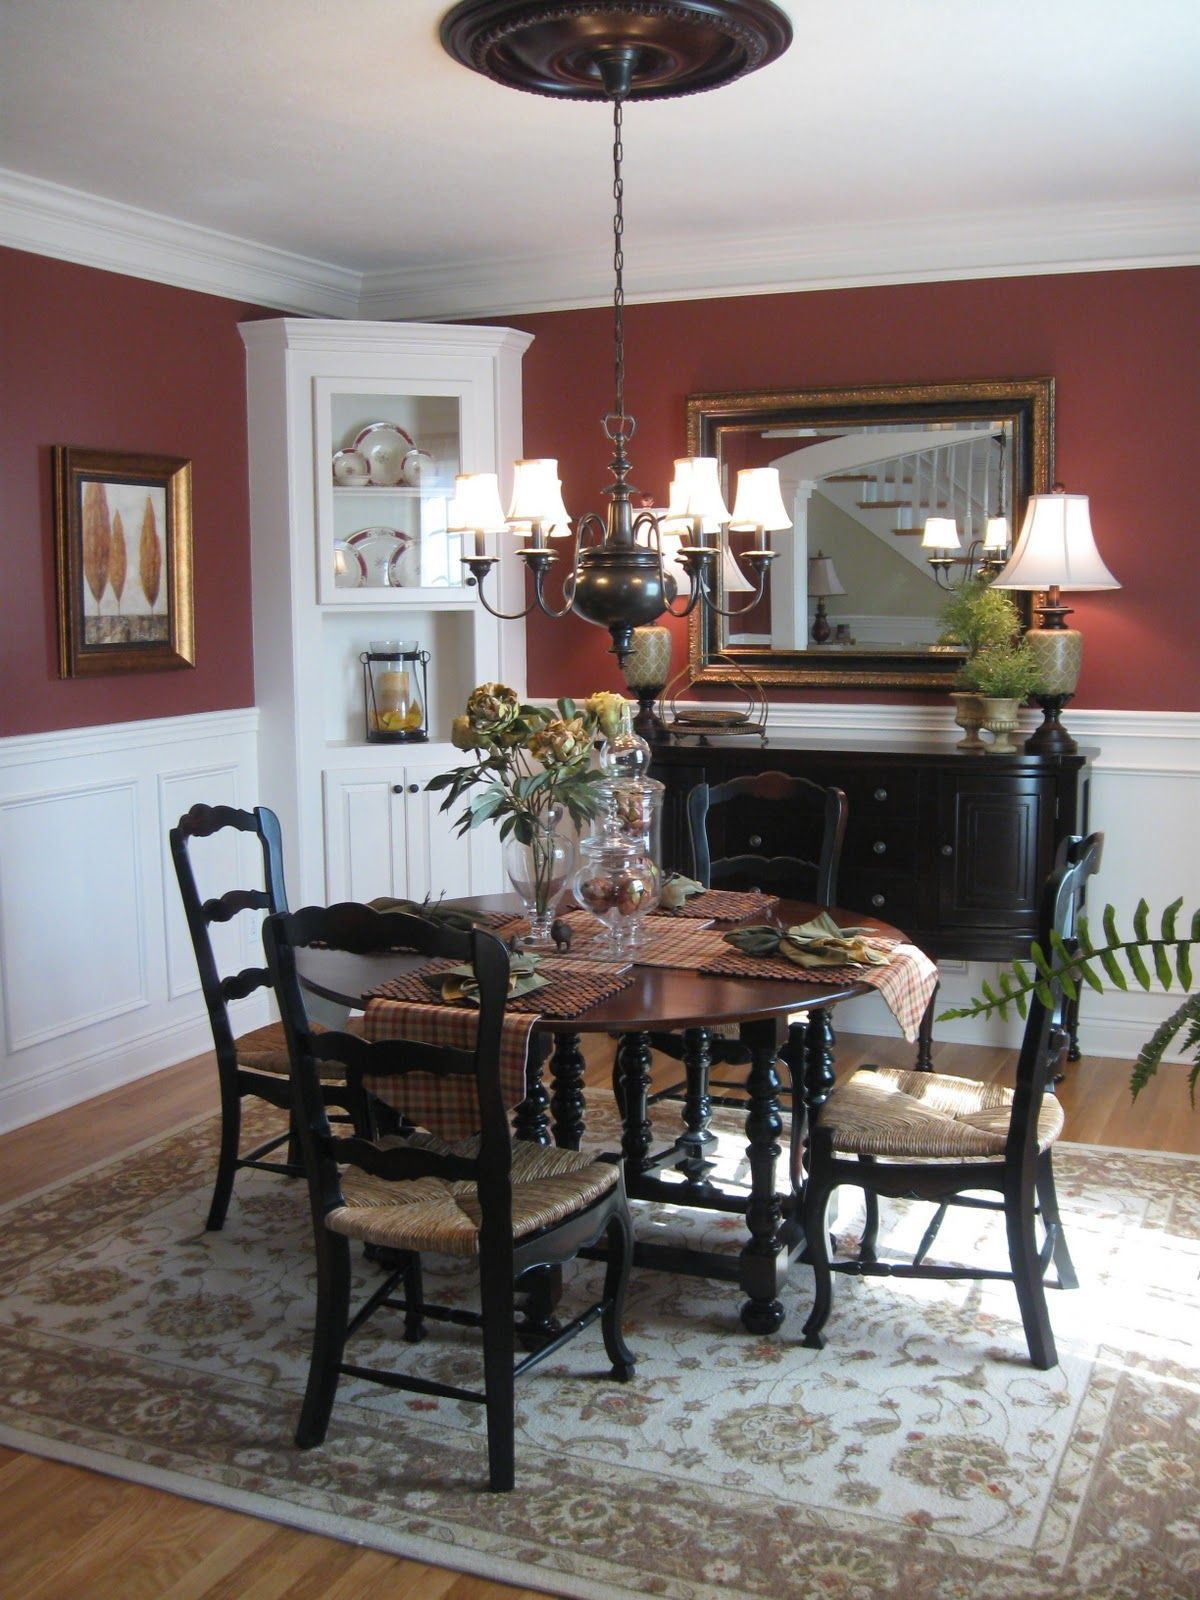 Shinedesign A Charming French Country Dining Room Room